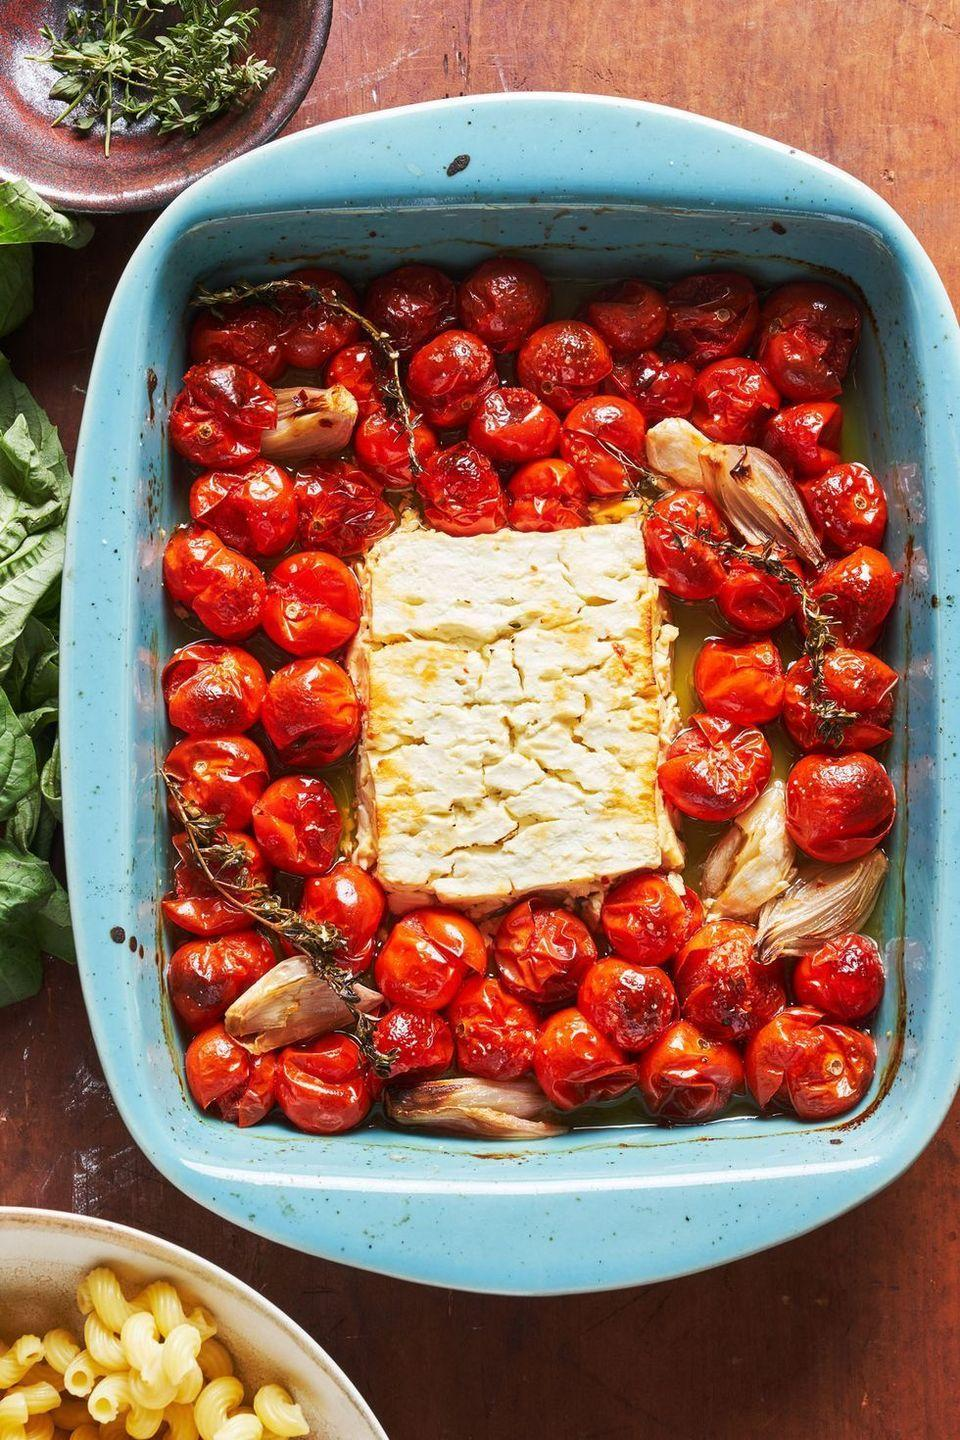 """<p>Obviously roasting a block of feta with bursting tomatoes is going to be amazing. But is it good enough to break the internet? Our answer, begrudgingly, is yes. It's genius! </p><p>Get the <a href=""""https://www.delish.com/uk/cooking/recipes/a35426947/baked-feta-pasta-tiktok/"""" rel=""""nofollow noopener"""" target=""""_blank"""" data-ylk=""""slk:Baked Feta Pasta"""" class=""""link rapid-noclick-resp"""">Baked Feta Pasta</a> recipe.</p>"""